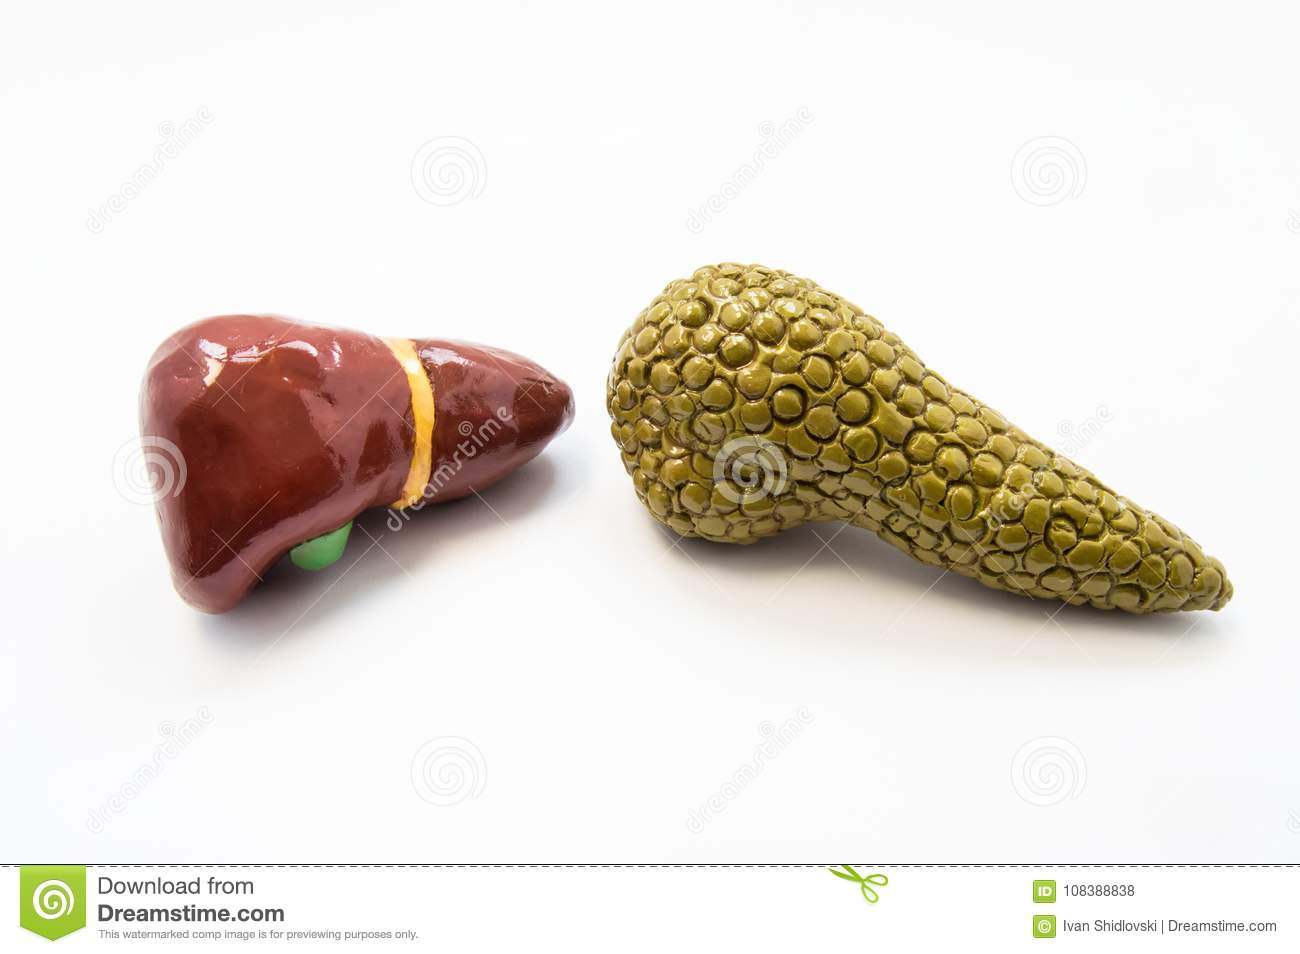 Concept of the hepatobiliary system. Anatomical models of liver and pancreas lie nearby on a white background. Diseases and pathol